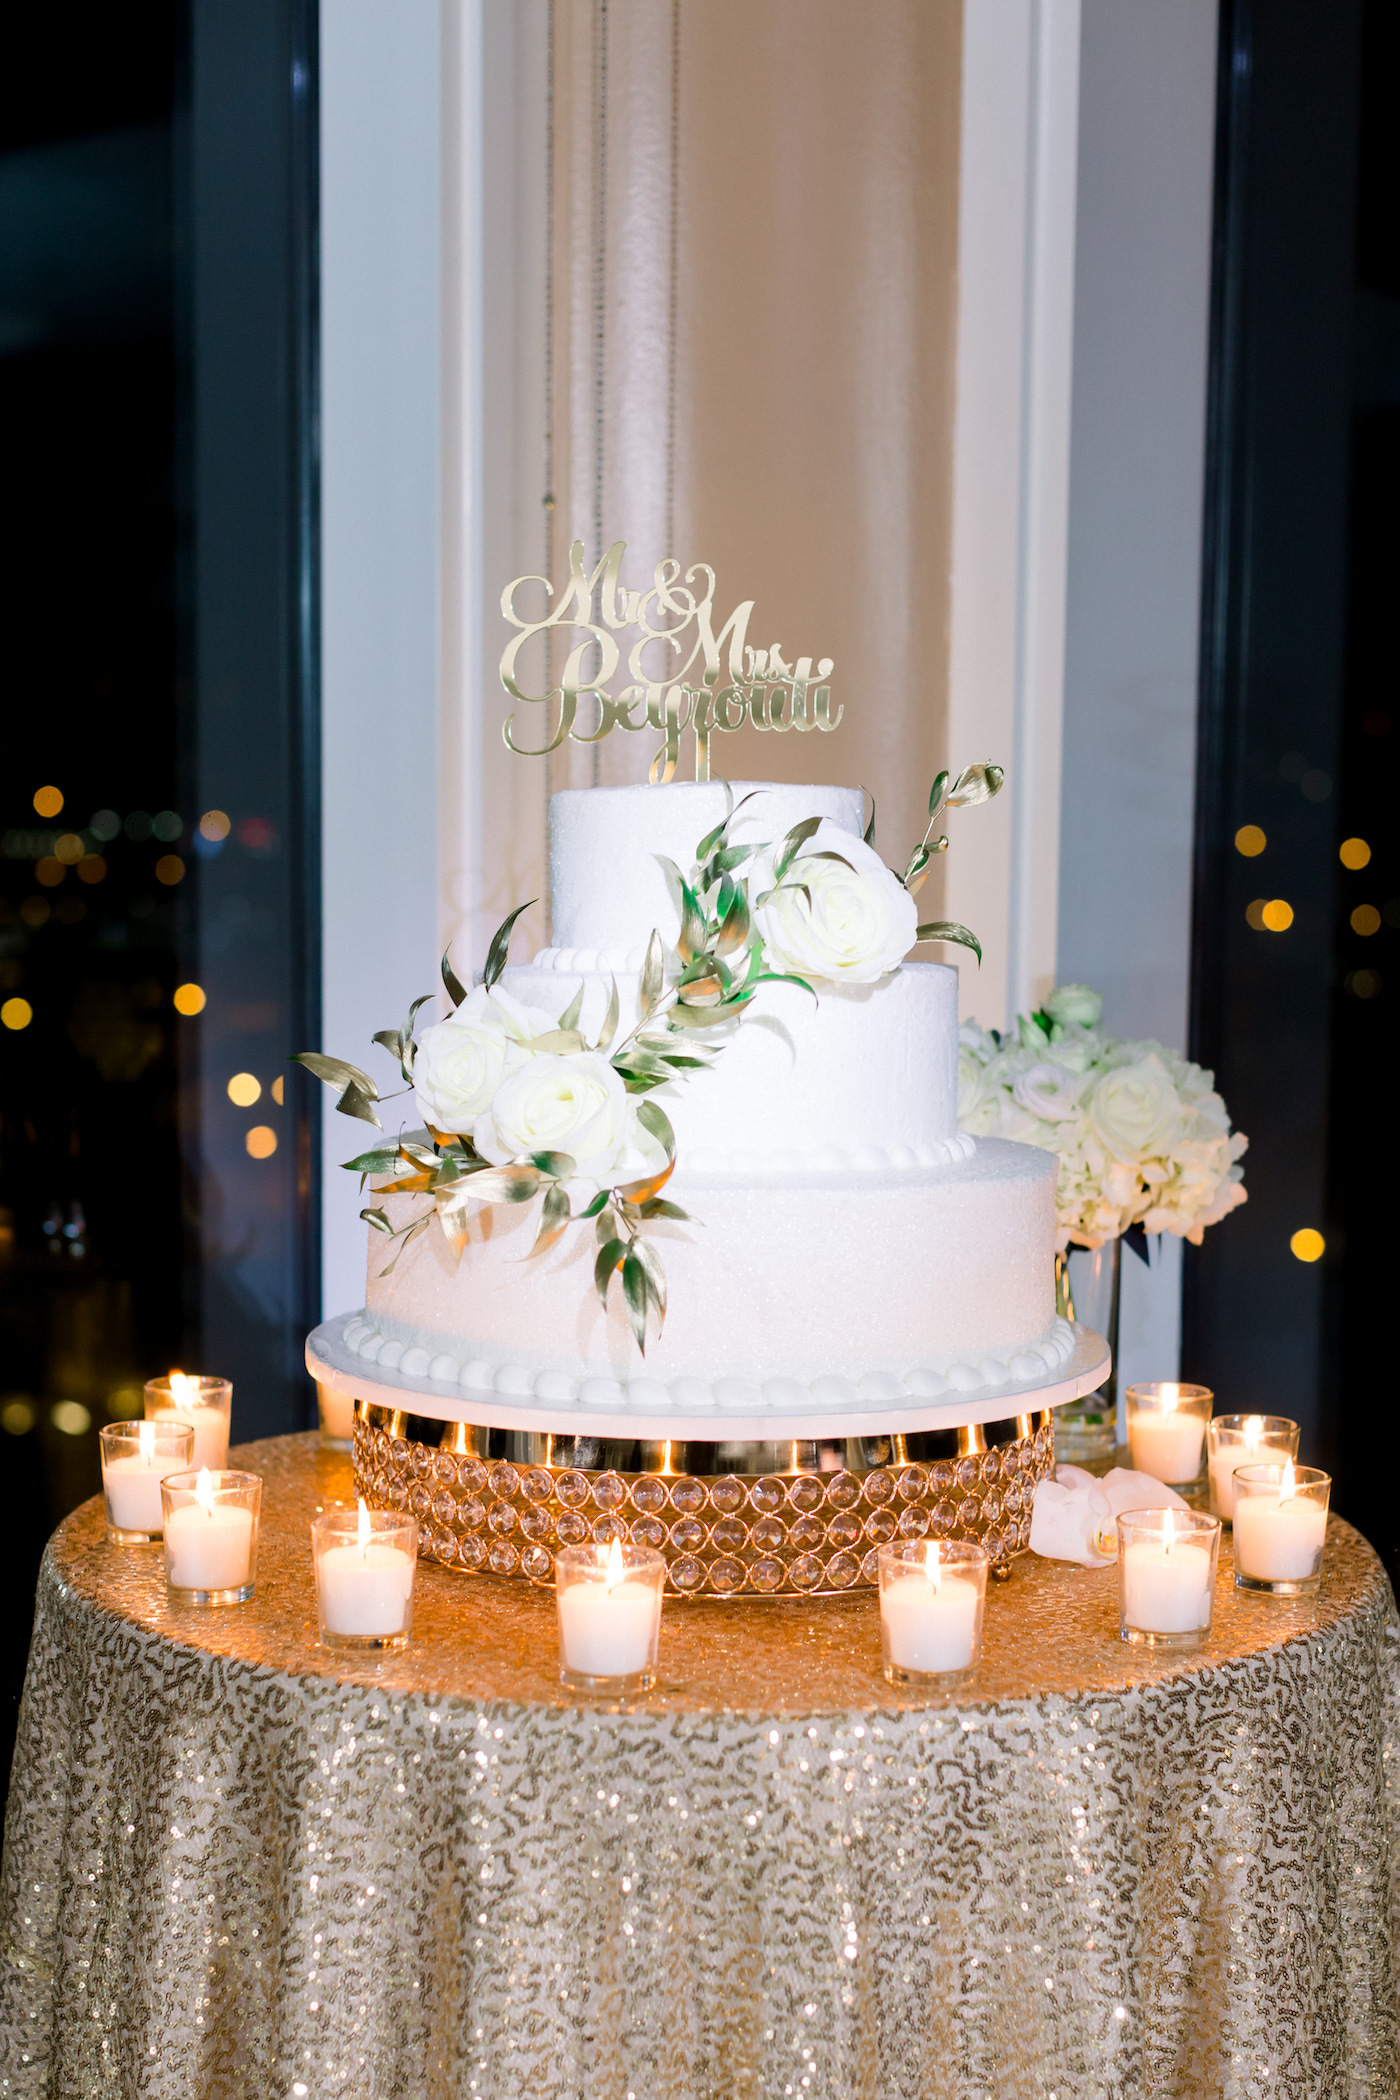 Classic Three Tier White Wedding Cake with Roses and Custom Gold Cake Topper on Table with Gold Sequin Tablecloth and Candles | Wedding Photographer Shauna and Jordon Photography | Tampa Bay Wedding Planner UNIQUE Weddings + Events